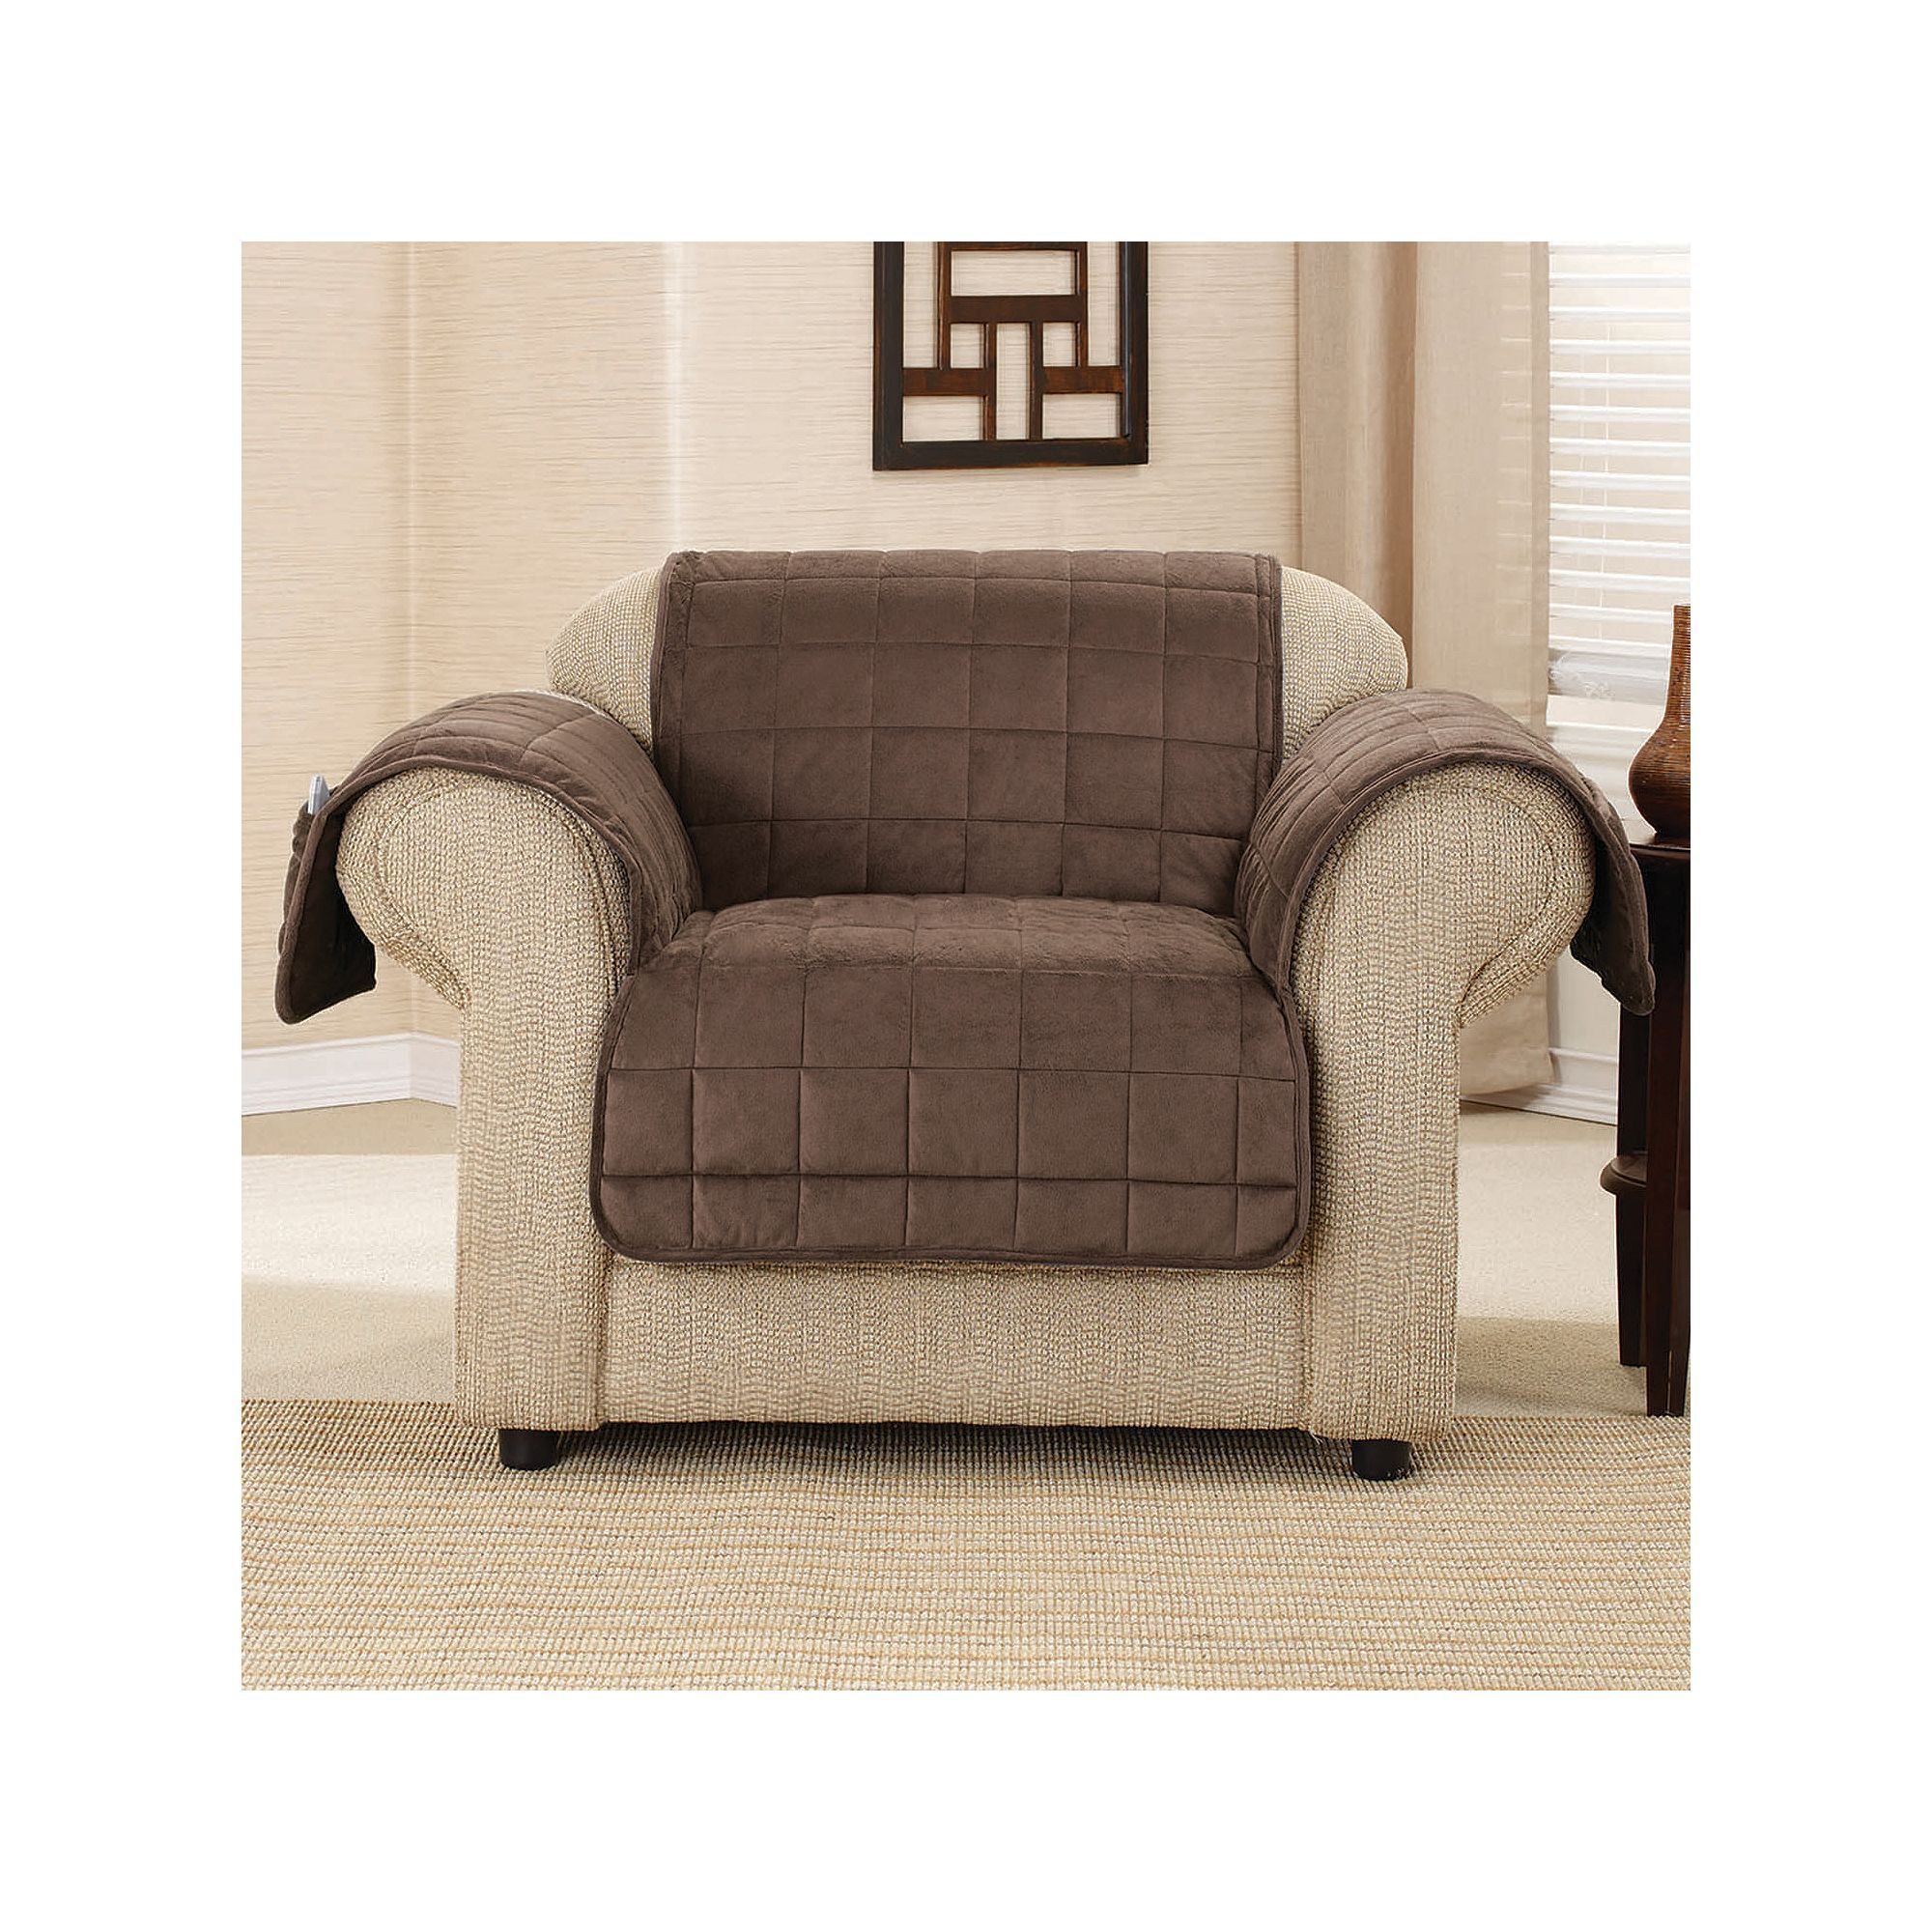 sure fit patio furniture covers. Sure Fit Deep Pile Velvet Chair Slipcover, Brown Patio Furniture Covers I